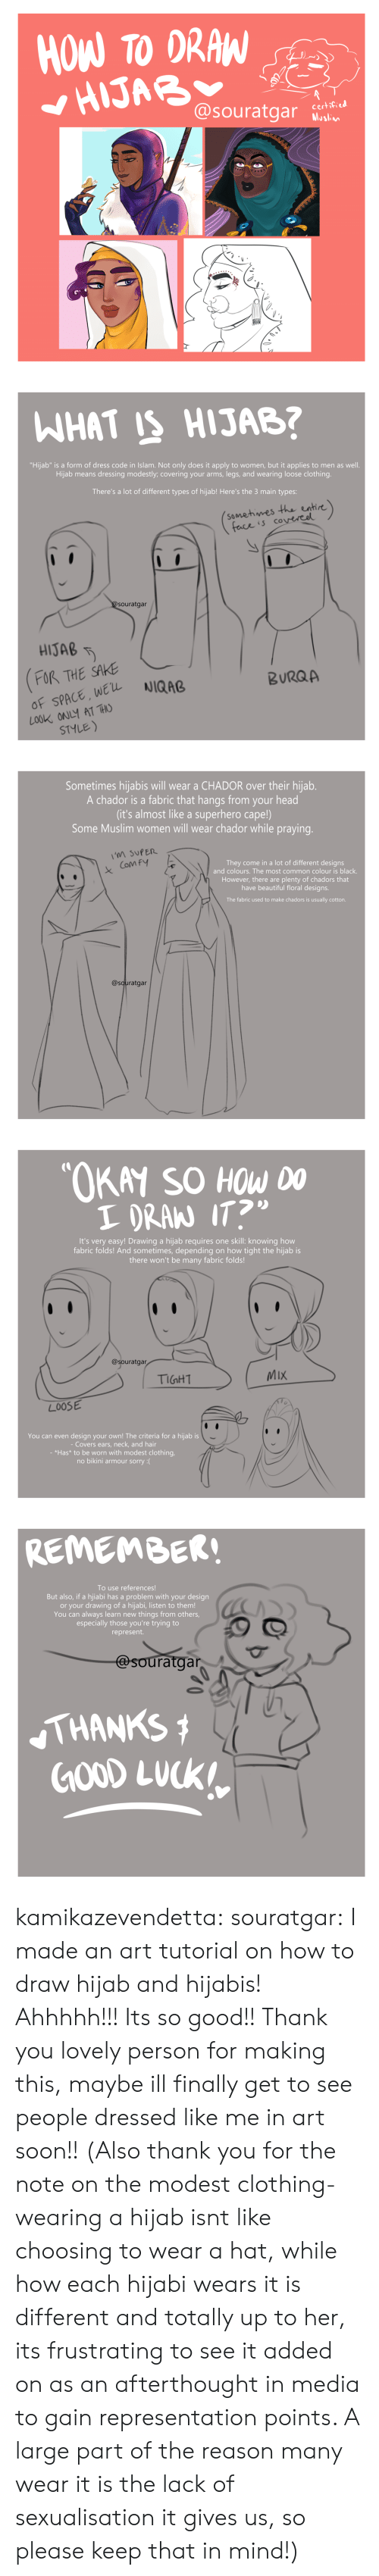 "ears: HOW TO DRAW  HIJAB  @souratgar  certified  Muslim   WHAT IS HIJAB?  ""Hijab"" is a form of dress code in Islam. Not only does it apply to women, but it applies to men as well.  Hijab means dressing modestly; covering your arms, legs, and wearing loose clothing.  There's a lot of different types of hijab! Here's the 3 main types:  (somehimes the entire)  face is covereel  @Souratgar  HIJAB  FOR THE SAKE  OF SPACE, WEL  LOOK ONLY AT THO  STYLE)  NIQAB  BURQA   Sometimes hijabis will wear a CHADOR over their hijab.  A chador is a fabric that hangs from your head  (it's almost like a superhero cape!)  Some Muslim women will wear chador while praying.  M SUPER  They come in a lot of different designs  and colours. The most common colour is black.  Com FY  However, there are plenty of chadors that  have beautiful floral designs.  The fabric used to make chadors is usually cotton.  @souratgar   ""OKAY SO HOW DO  I DRAN IT?  It's very easy! Drawing a hijab requi res one skill: knowing how  fabric folds! And sometimes, depending on how tight the hijab is  there won't be many fabric folds!  @souratgar  MIX  TIGHT  LOOSE  You can even design your own! The criteria for a hijab is  - Covers ears, neck, and hair  - *Has* to be worn with modest clothing,  no bikini armour sorry :(   REMEMBER!  To use references!  But also, if a hijiabi has a problem with your design  or your drawing of a hijabi, listen to them!  You can always learn new things from others,  especially those you're trying to  represent.  @souratgar  THANKS  GOOD LUCK kamikazevendetta:  souratgar: I made an art tutorial on how to draw hijab and hijabis! Ahhhhh!!! Its so good!! Thank you lovely person for making this, maybe ill finally get to see people dressed like me in art soon!!   (Also thank you for the note on the modest clothing- wearing a hijab isnt like choosing to wear a hat, while how each hijabi wears it is different and totally up to her, its frustrating to see it added on as an afterthought in media to gain representation points. A large part of the reason many wear it is the lack of sexualisation it gives us, so please keep that in mind!)"